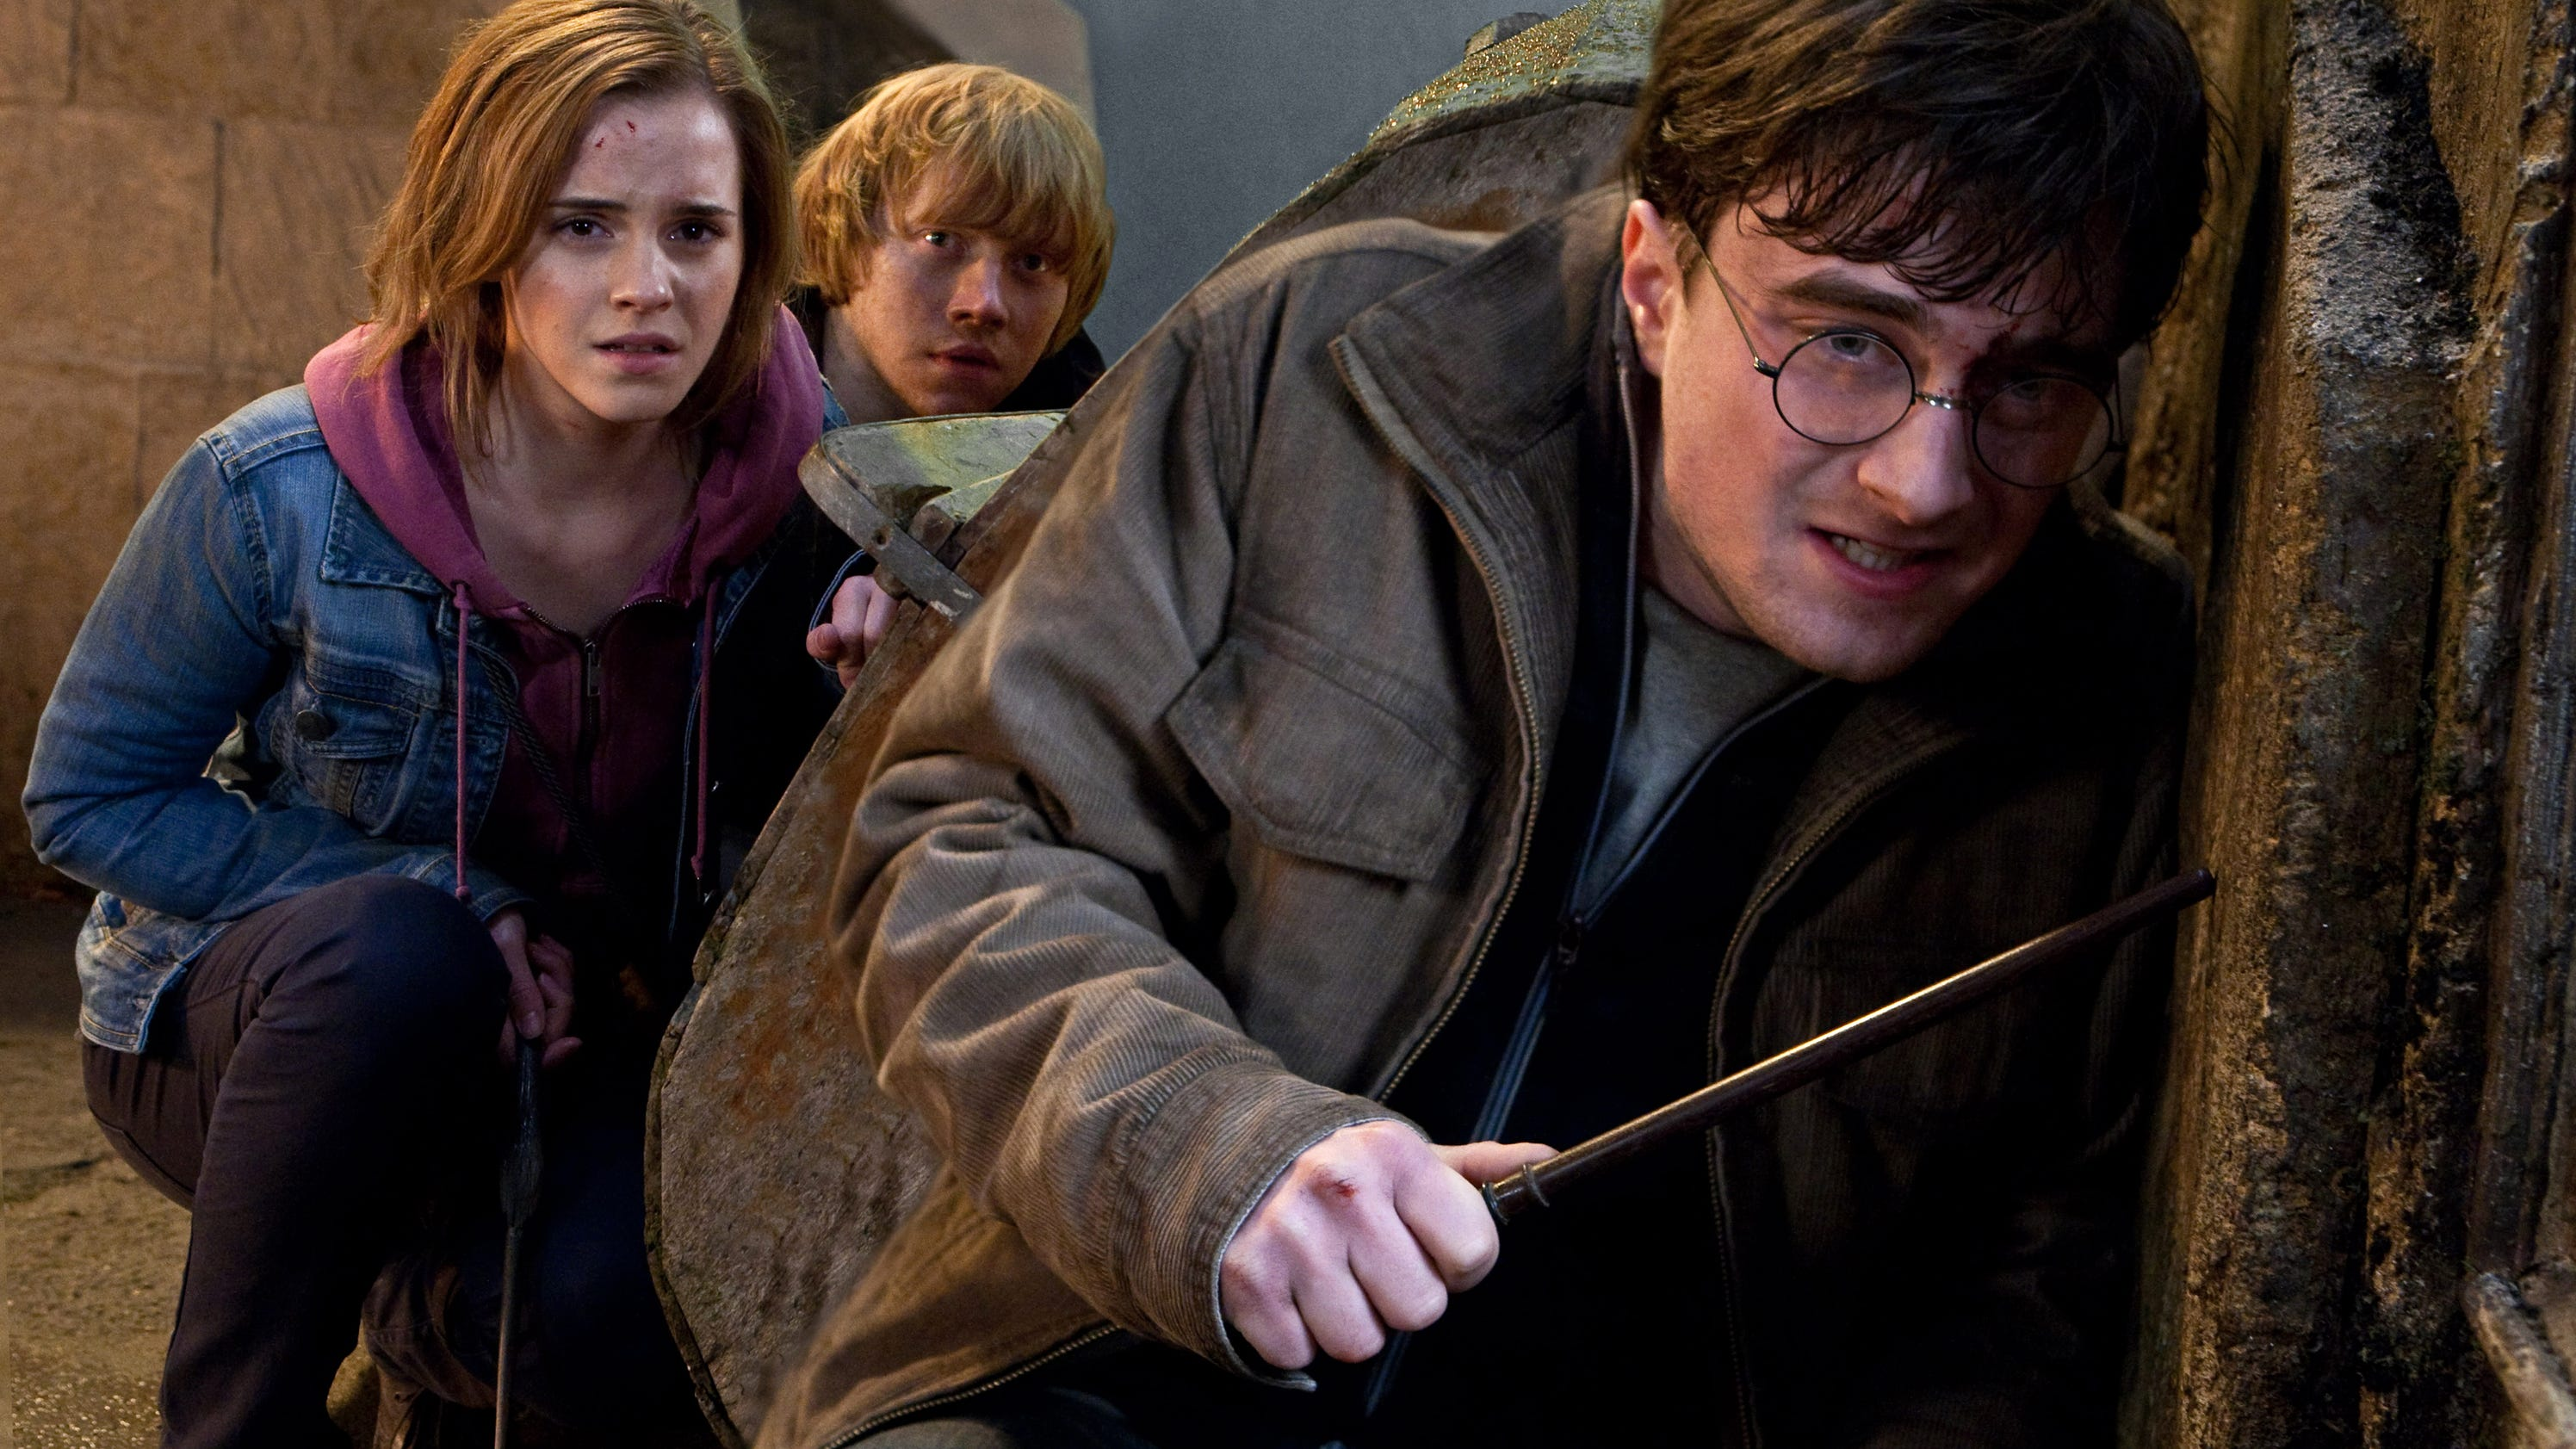 harry potter and the deathly hallows part 2 harry